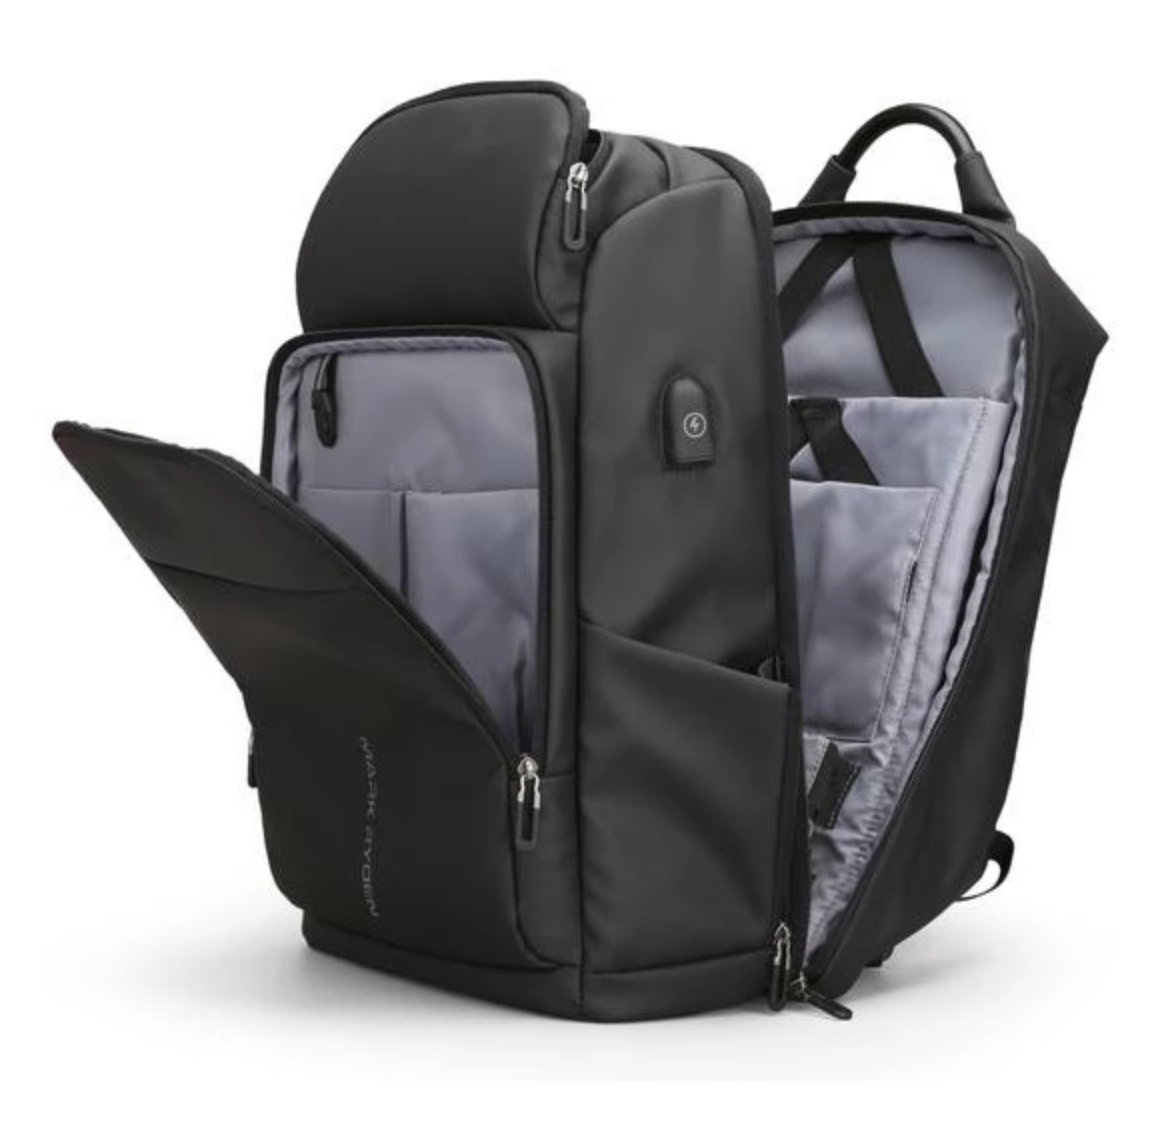 Mark Ryden Compacto Backpack - $ 99.95 USD - iRelax® Novelty Store